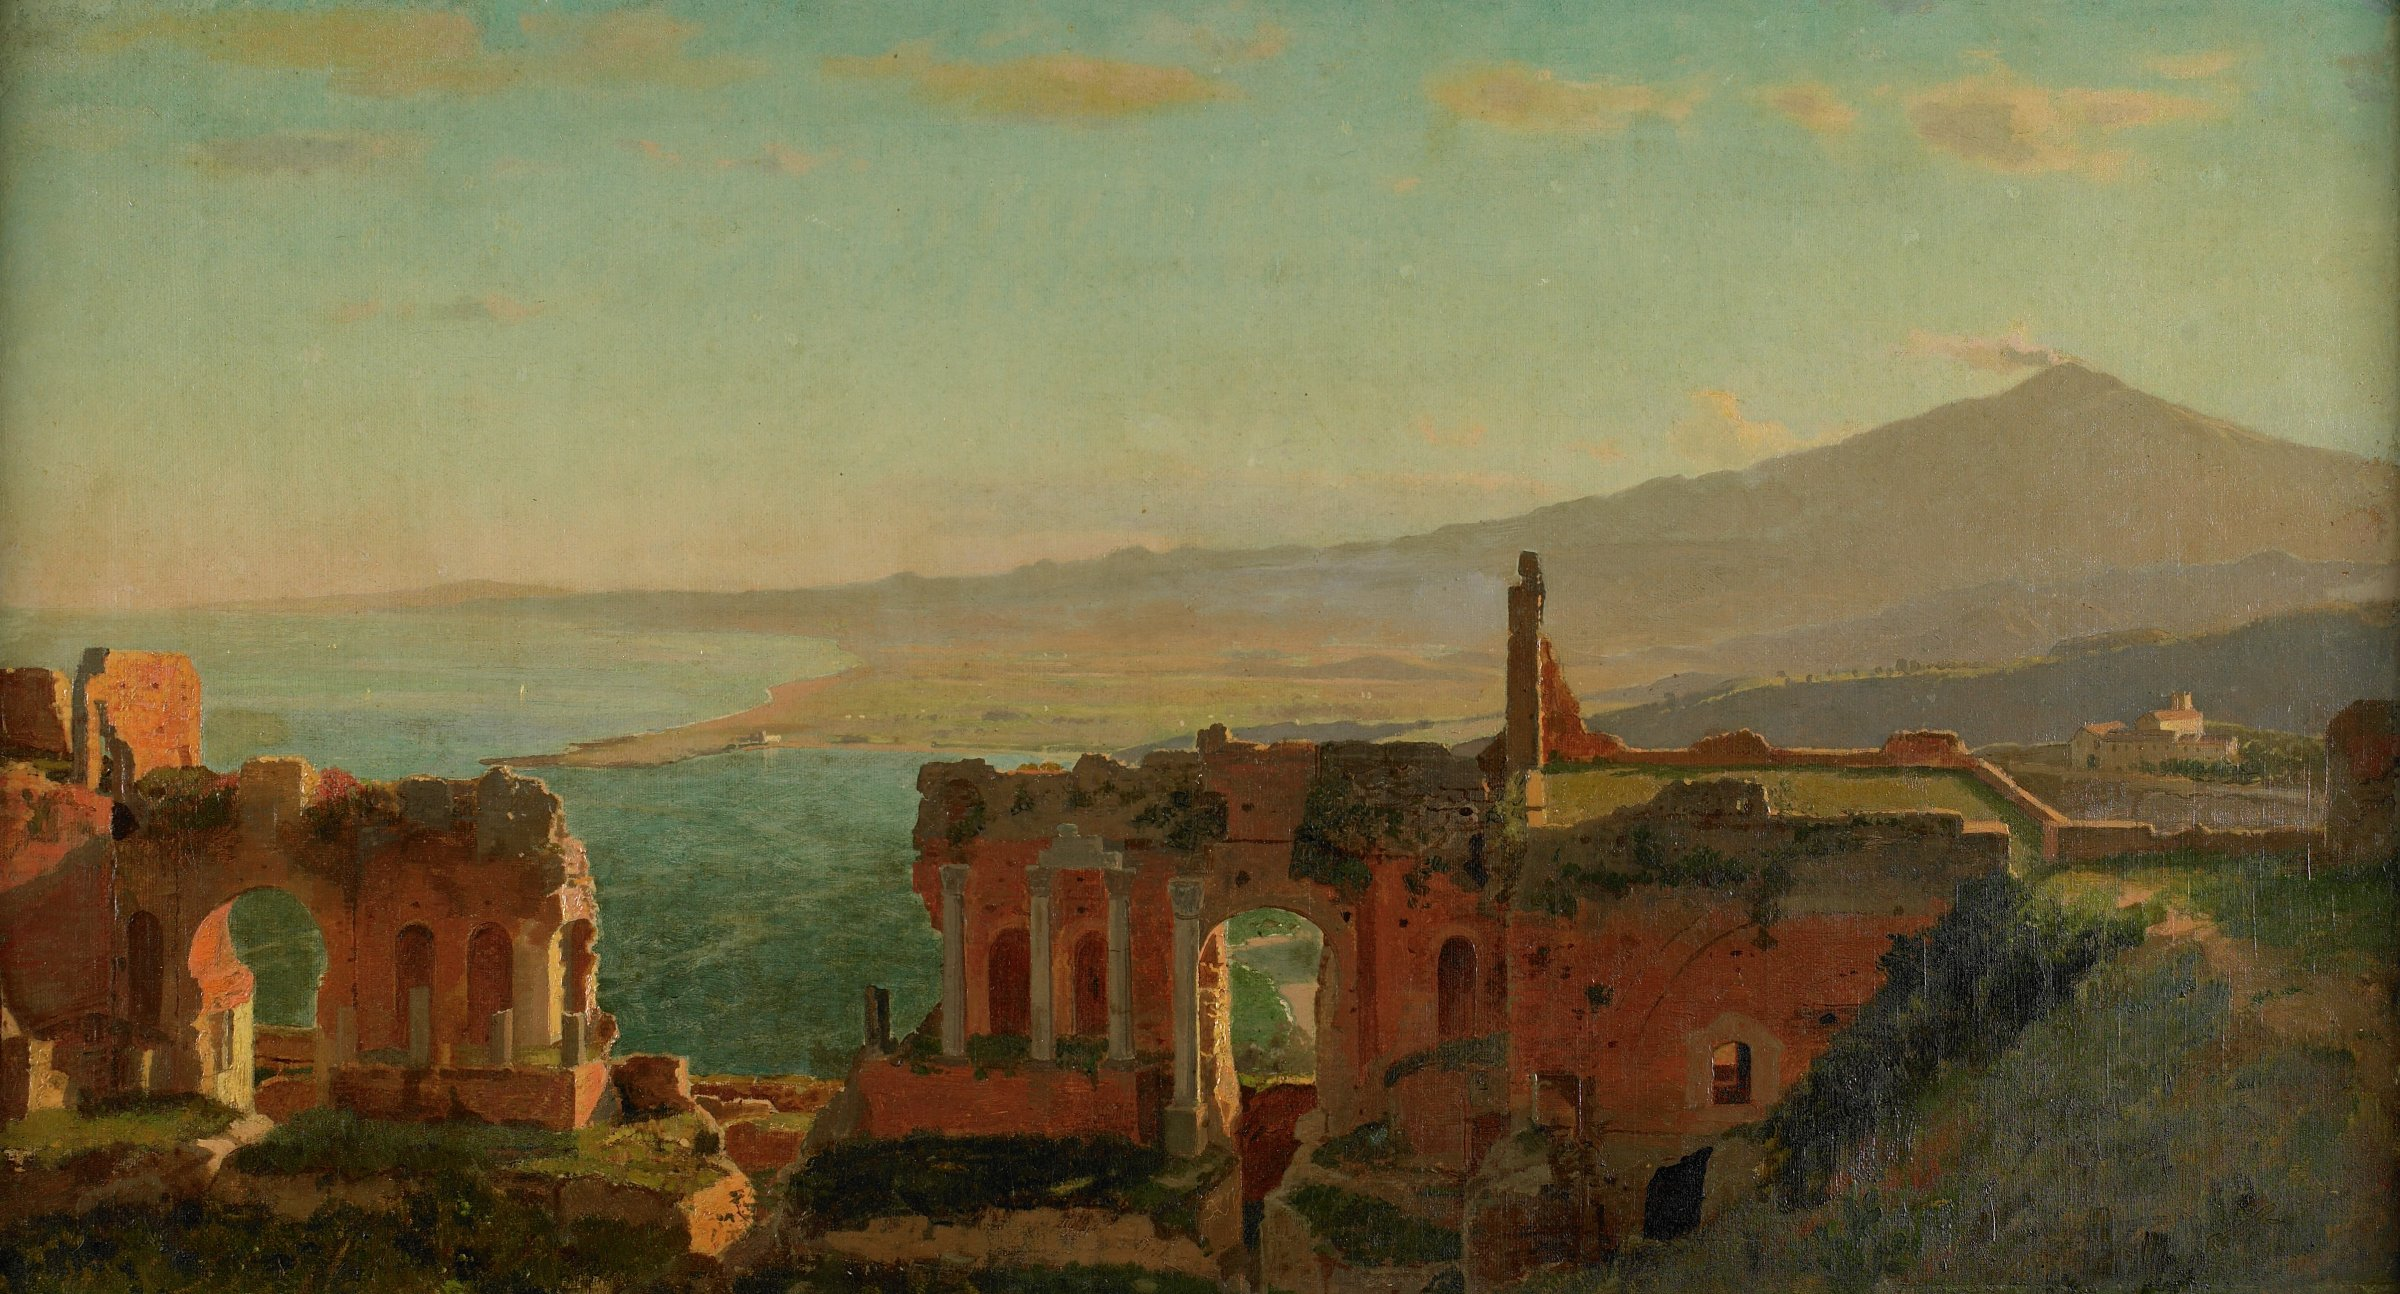 Mt. Aetna from Taormina, William Stanley Haseltine, oil on canvas